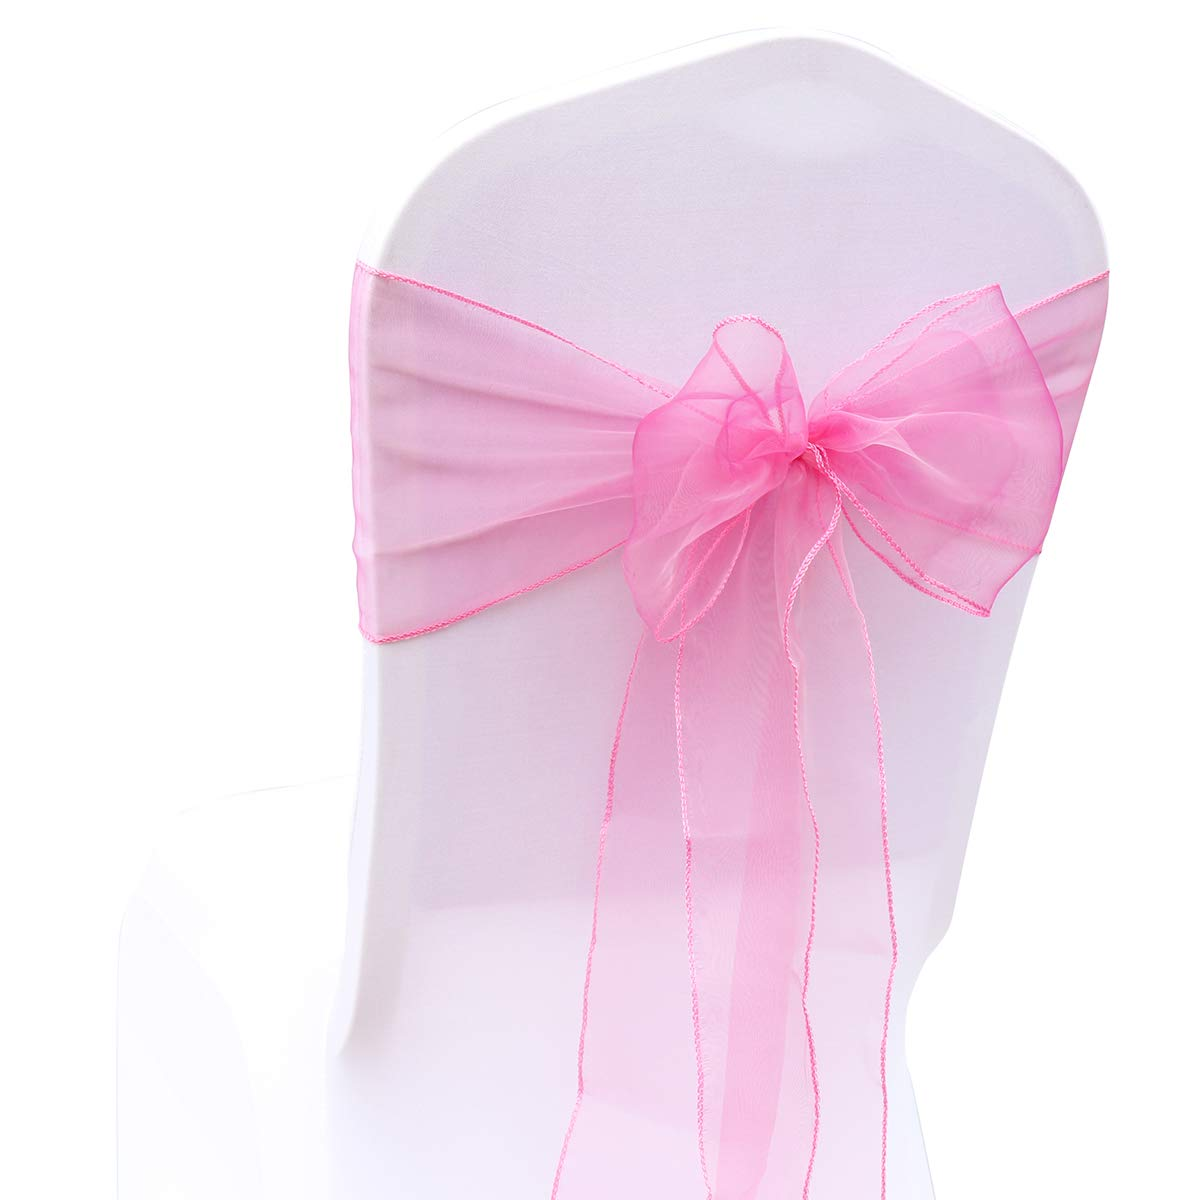 BIT.FLY 25 Pcs Organza Chair Sashes for Wedding Banquet Party Decoration Chair Bows Ties Chair Cover Bands Event Supplies - Fuchsia